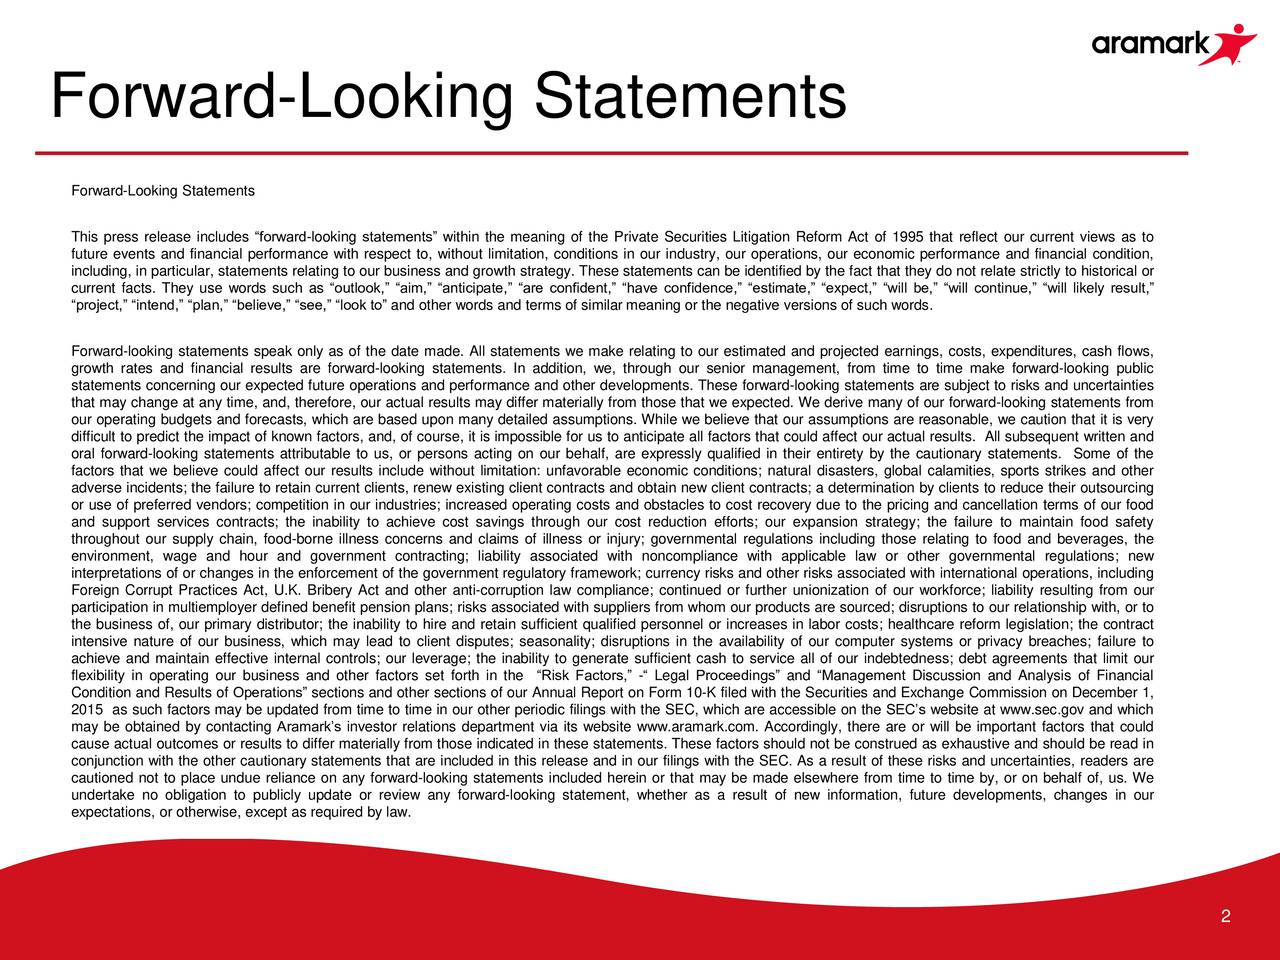 Forward-Looking Statements This press release includes forward-looking statements within the meaning of the Private Securities Litigation Reform Act of 1995 that reflect our current views as to future events and financial performance with respect to, without limitation, conditions in our industry, our operations, our economic performance and financial condition, including, in particular, statements relating to our business and growth strategy. These statements can be identified by the fact that they do not relate strictly to historical or current facts. They use words such as outlook, aim, anticipate, are confident, have confidence, estimate, expect, will be, will continue, will likely result, project, intend, plan, believe, see, look to and other words and terms of similar meaning or the negative versions of such words. Forward-looking statements speak only as of the date made. All statements we make relating to our estimated and projected earnings, costs, expenditures, cash flows, growth rates and financial results are forward-looking statements. In addition, we, through our senior management, from time to time make forward-looking public statements concerning our expected future operations and performance and other developments. These forward-looking statements are subject to risks and uncertainties that may change at any time, and, therefore, our actual results may differ materially from those that we expected. We derive many of our forward-looking statements from our operating budgets and forecasts, which are based upon many detailed assumptions. While we believe that our assumptions are reasonable, we caution that it is very difficult to predict the impact of known factors, and, of course, it is impossible for us to anticipate all factors that could affect our actual results. All subsequent written and oral forward-looking statements attributable to us, or persons acting on our behalf, are expressly qualified in their entirety by the cautionary statements. Some of the factors that we believe could affect our results include without limitation: unfavorable economic conditions; natural disasters, global calamities, sports strikes and other adverse incidents; the failure to retain current clients, renew existing client contracts and obtain new client contracts; a determination by clients to reduce their outsourcing or use of preferred vendors; competition in our industries; increased operating costs and obstacles to cost recovery due to the pricing and cancellation terms of our food and support services contracts; the inability to achieve cost savings through our cost reduction efforts; our expansion strategy; the failure to maintain food safety throughout our supply chain, food-borne illness concerns and claims of illness or injury; governmental regulations including those relating to food and beverages, the environment, wage and hour and government contracting; liability associated with noncompliance with applicable law or other governmental regulations; new interpretations of or changes in the enforcement of the government regulatory framework; currency risks and other risks associated with international operations, including Foreign Corrupt Practices Act, U.K. Bribery Act and other anti-corruption law compliance; continued or further unionization of our workforce; liability resulting from our participation in multiemployer defined benefit pension plans; risks associated with suppliers from whom our products are sourced; disruptions to our relationship with, or to the business of, our primary distributor; the inability to hire and retain sufficient qualified personnel or increases in labor costs; healthcare reform legislation; the contract intensive nature of our business, which may lead to client disputes; seasonality; disruptions in the availability of our computer systems or privacy breaches; failure to achieve and maintain effective internal controls; our leverage; the inability to generate sufficient cash to service all of our indebtedness; debt agreements that limit our flexibility in operating our business and other factors set forth in the Risk Factors, - Legal Proceedings and Management Discussion and Analysis of Financial Condition and Results of Operations sections and other sections of our Annual Report on Form 10-K filed with the Securities and Exchange Commission on December 1, 2015 as such factors may be updated from time to time in our other periodic filings with the SEC, which are accessible on the SECs website at www.sec.gov and which may be obtained by contacting Aramarks investor relations department via its website www.aramark.com. Accordingly, there are or will be important factors that could cause actual outcomes or results to differ materially from those indicated in these statements. These factors should not be construed as exhaustive and should be read in conjunction with the other cautionary statements that are included in this release and in our filings with the SEC. As a result of these risks and uncertainties, readers are cautioned not to place undue reliance on any forward-looking statements included herein or that may be made elsewhere from time to time by, or on behalf of, us. We undertake no obligation to publicly update or review any forward-looking statement, whether as a result of new information, future developments, changes in our expectations, or otherwise, except as required by law. 2